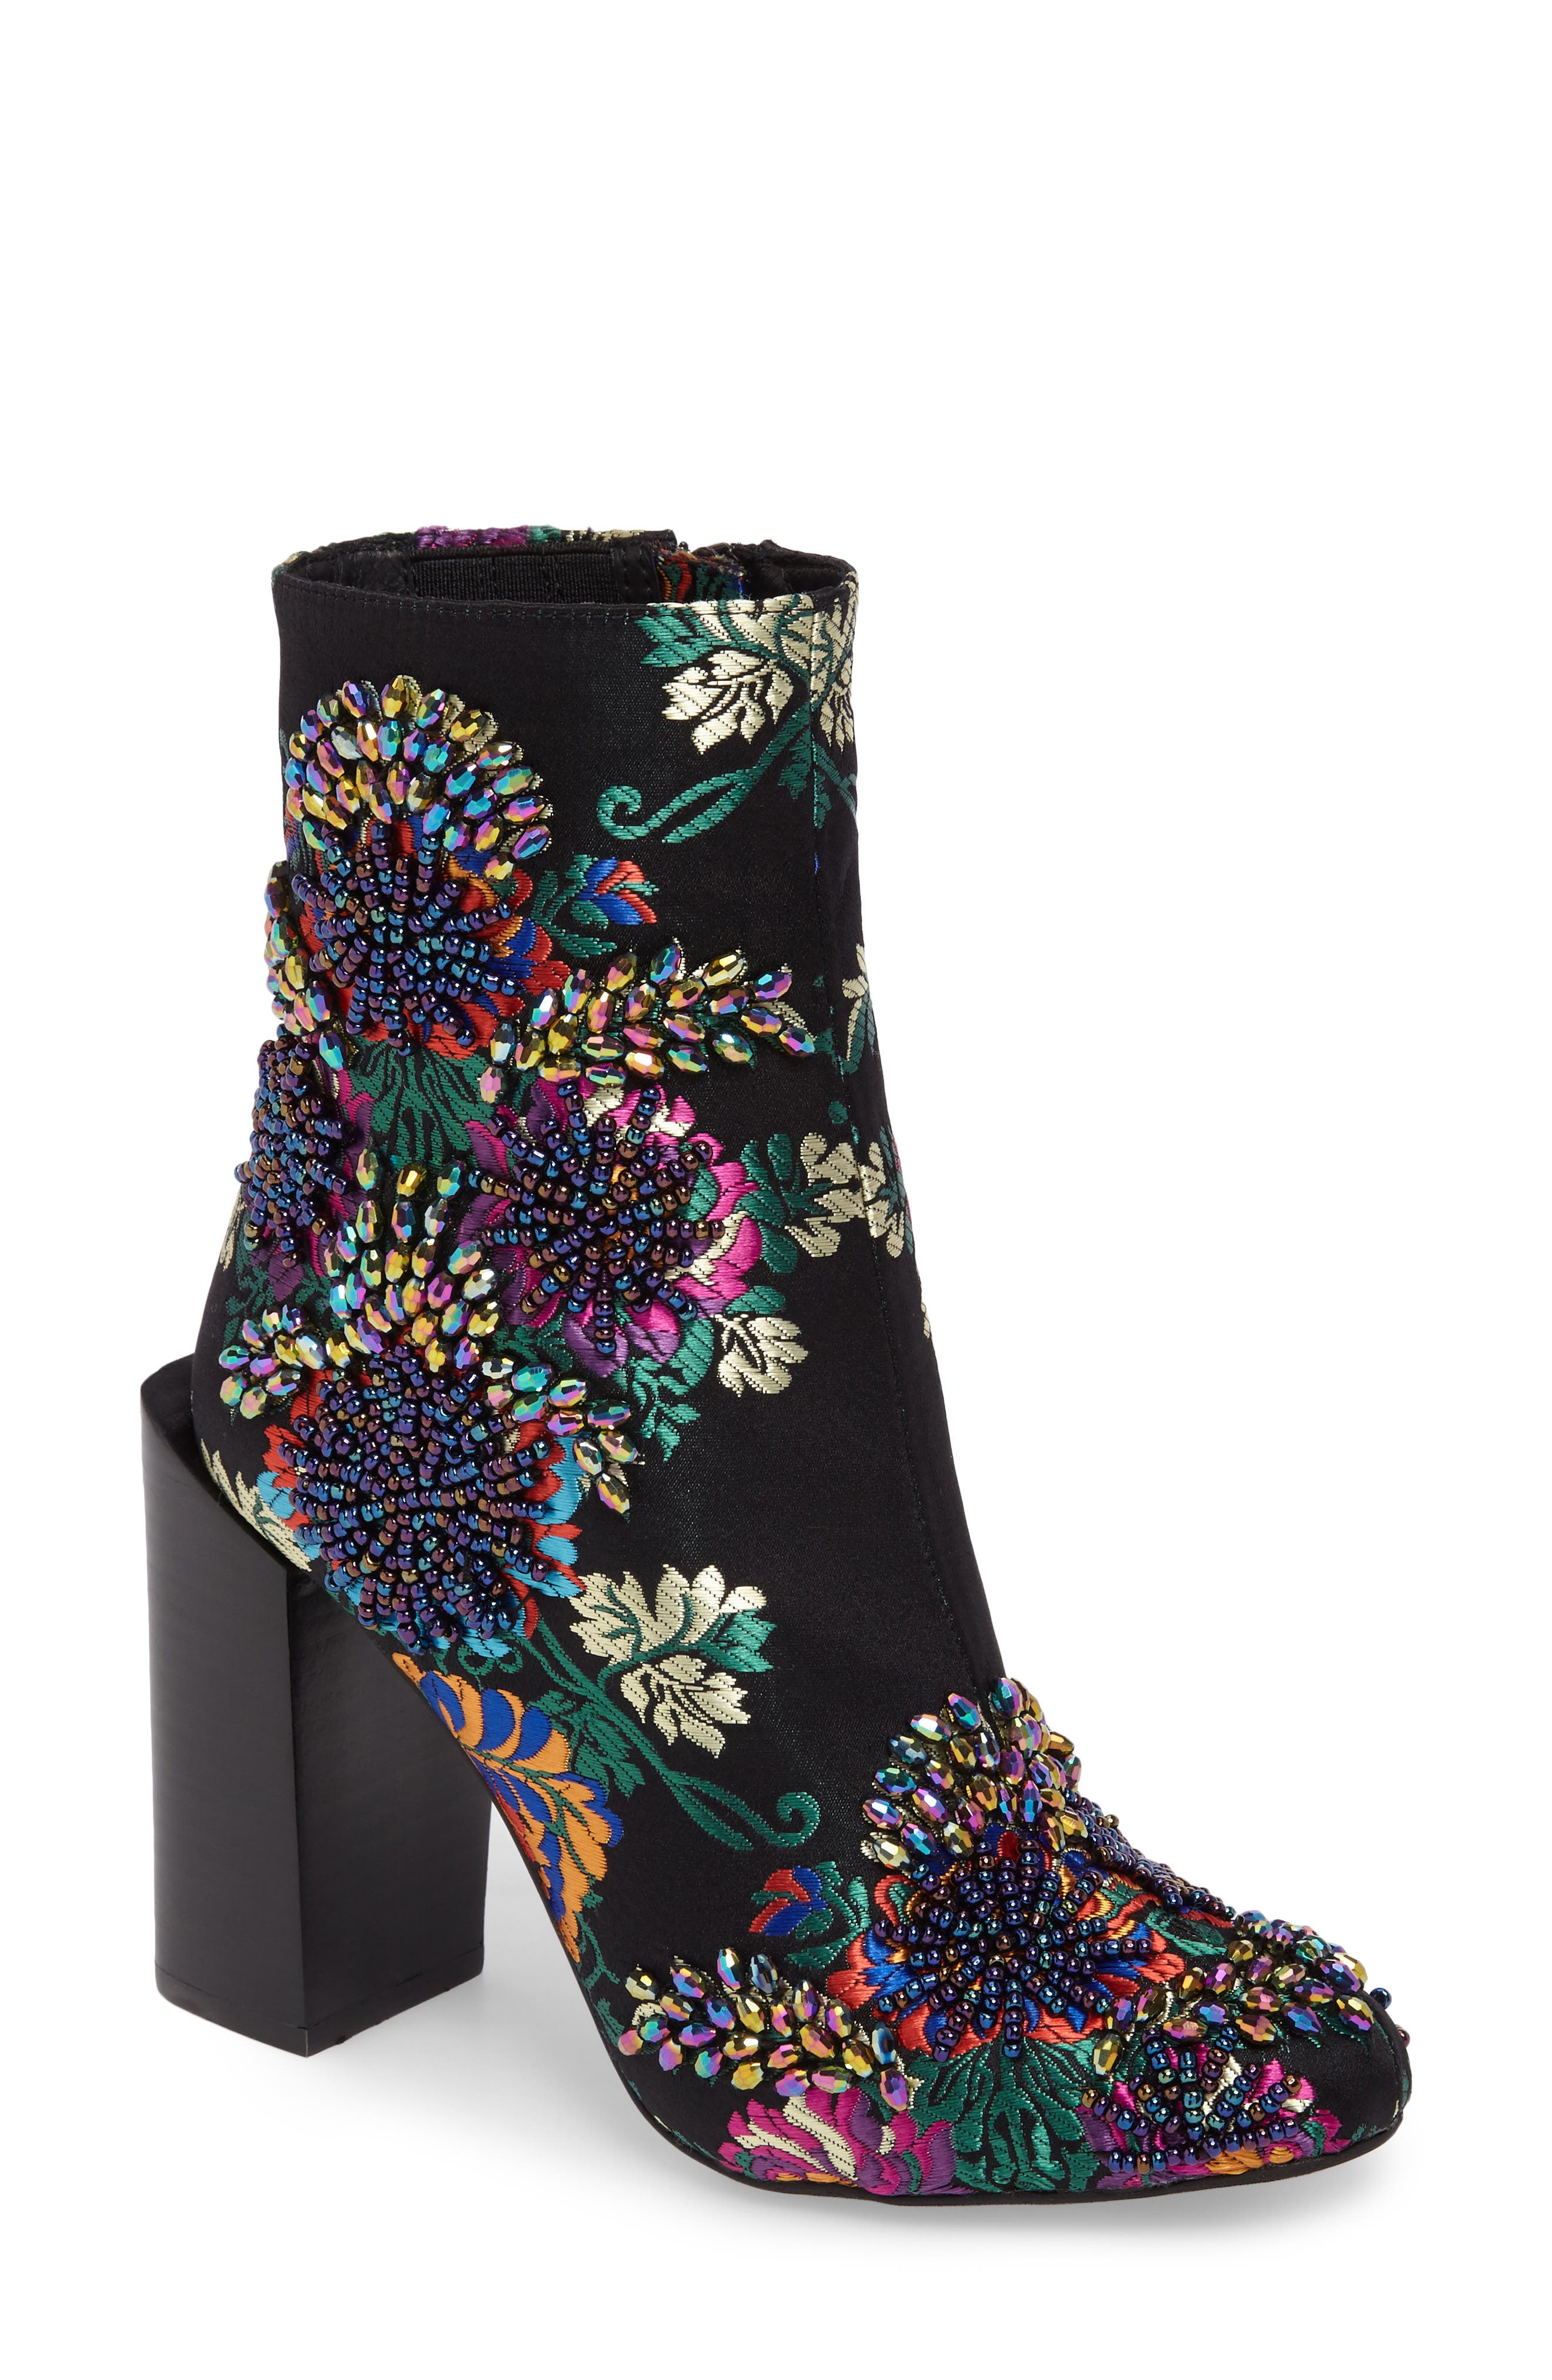 Stratford Embellished Brocade Bootie,                             Main thumbnail 1, color,                             001